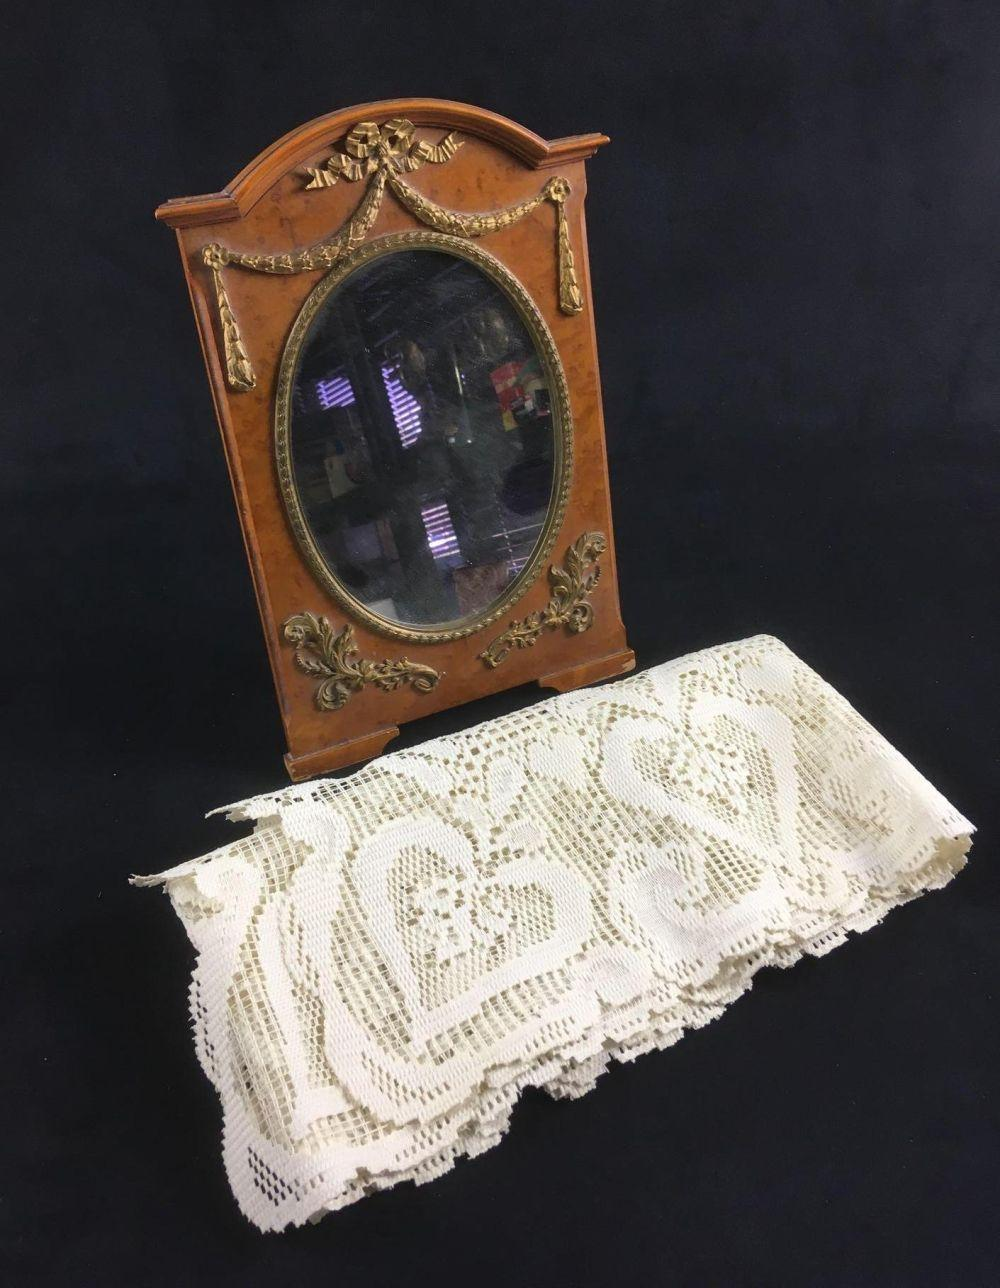 Antique Dressing Table Mirror and Lace Table Runner